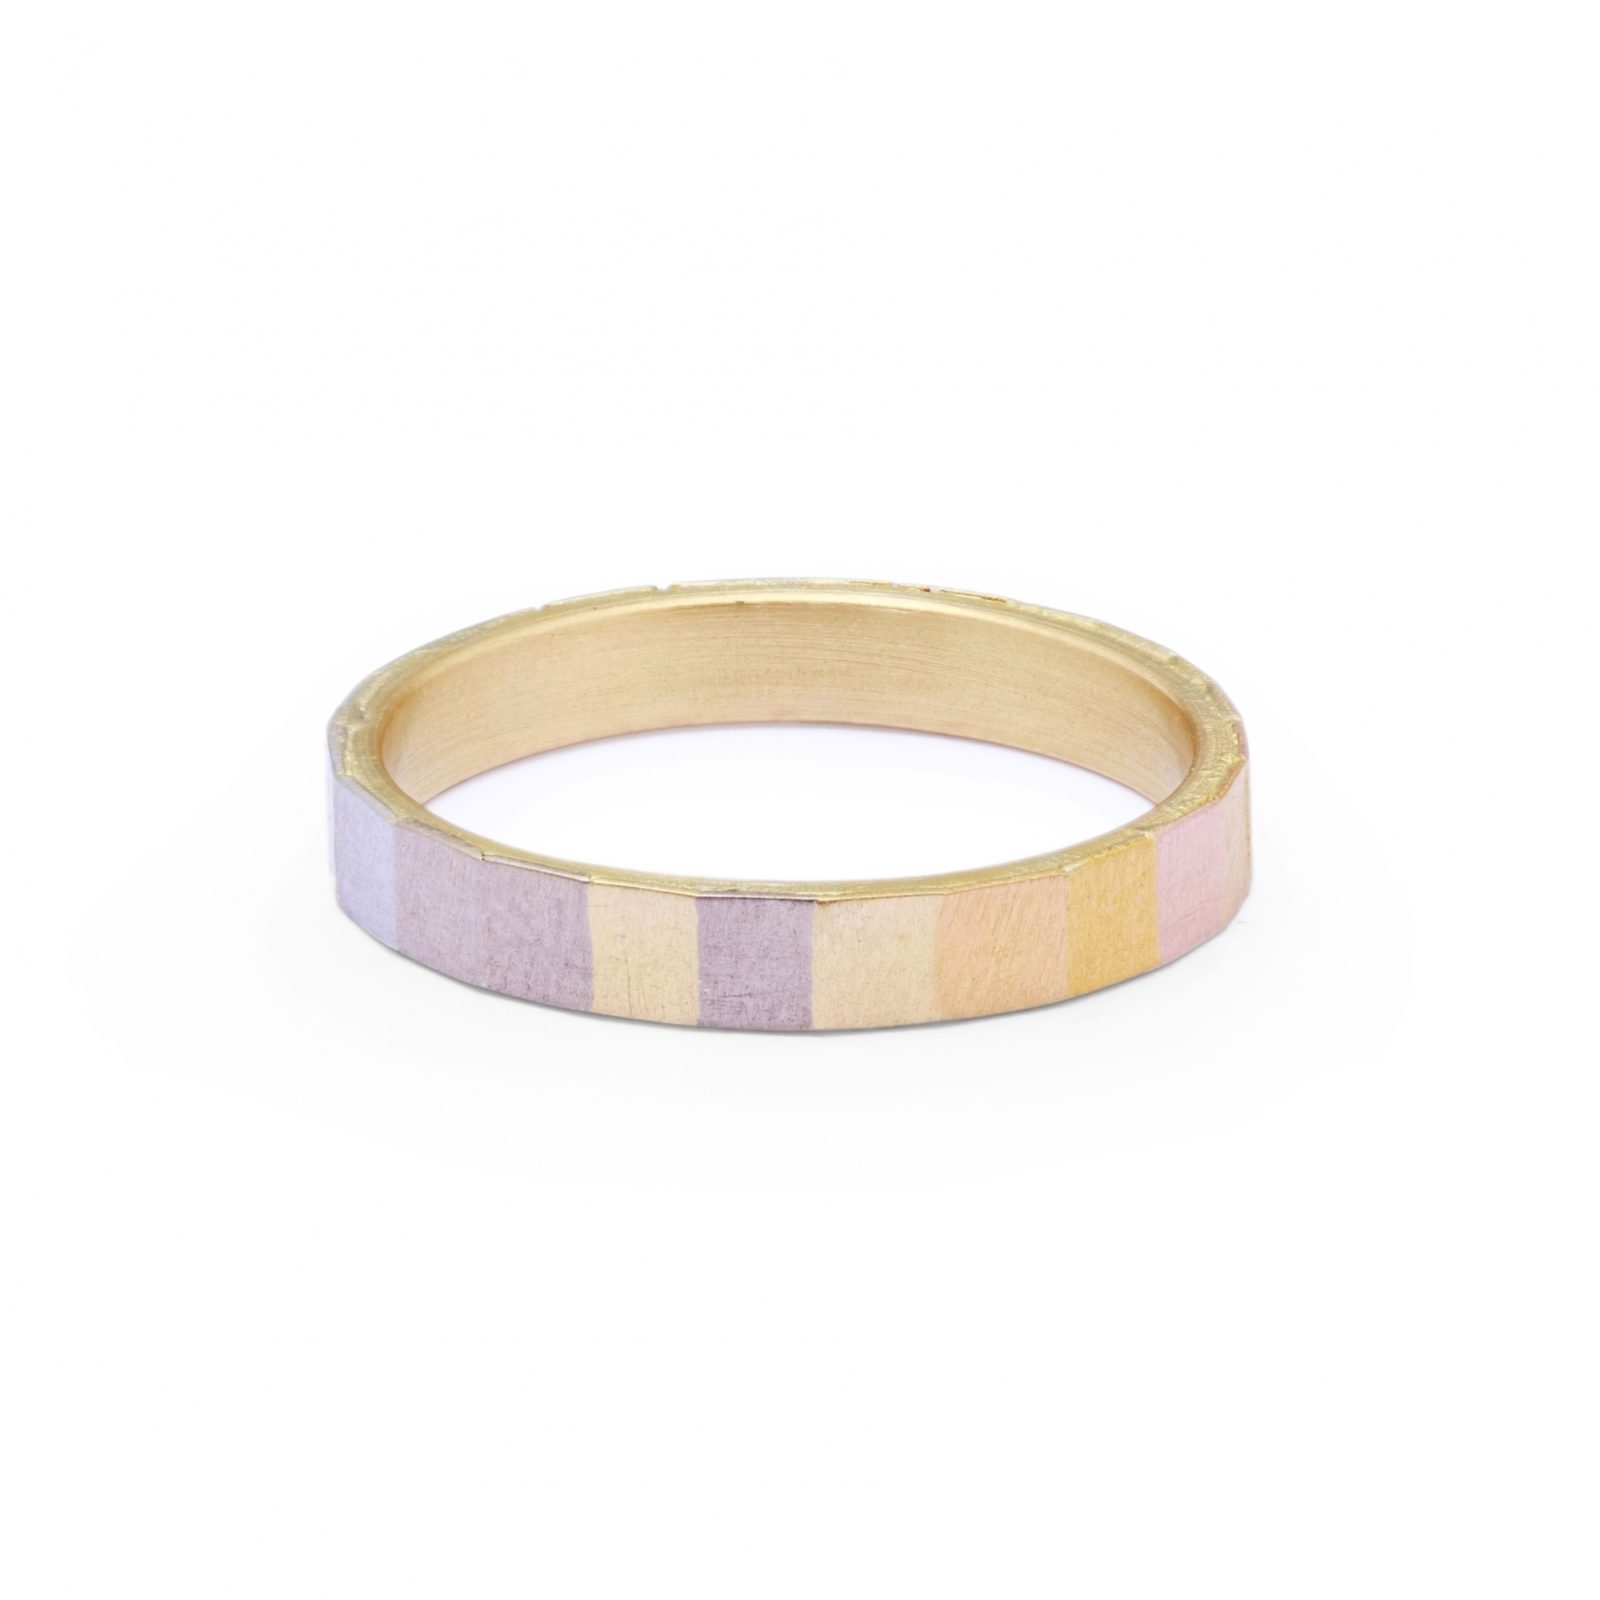 Sia Taylor KR15 RAIN Rainbow Gold Wide Faceted Band WB